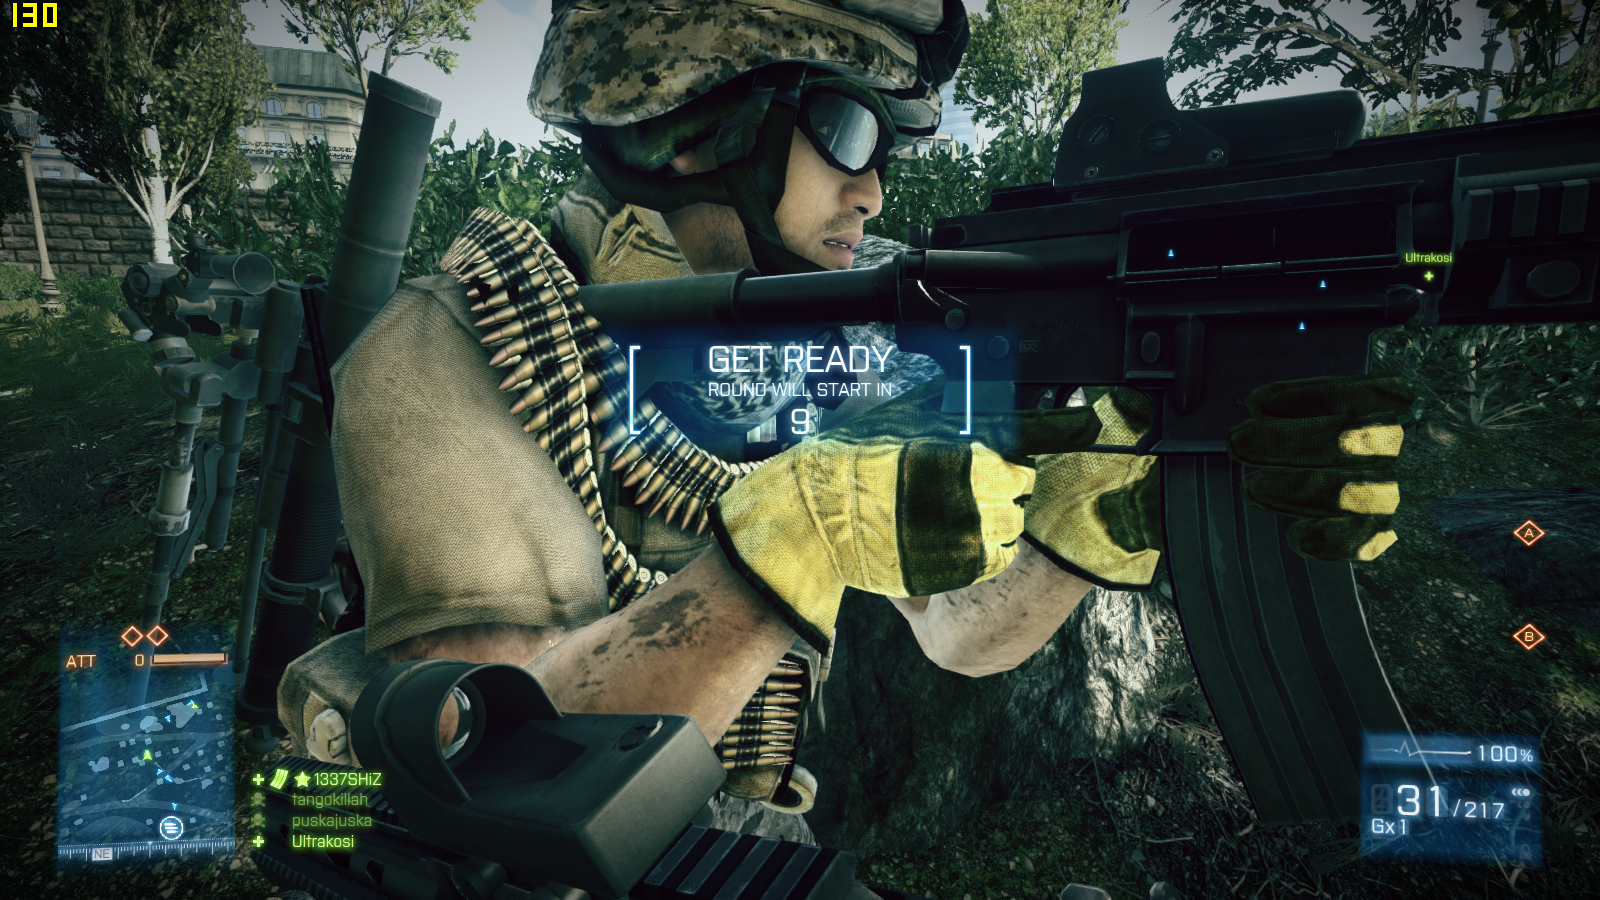 9872bf3_2011-10-29_05-26-34-07.png